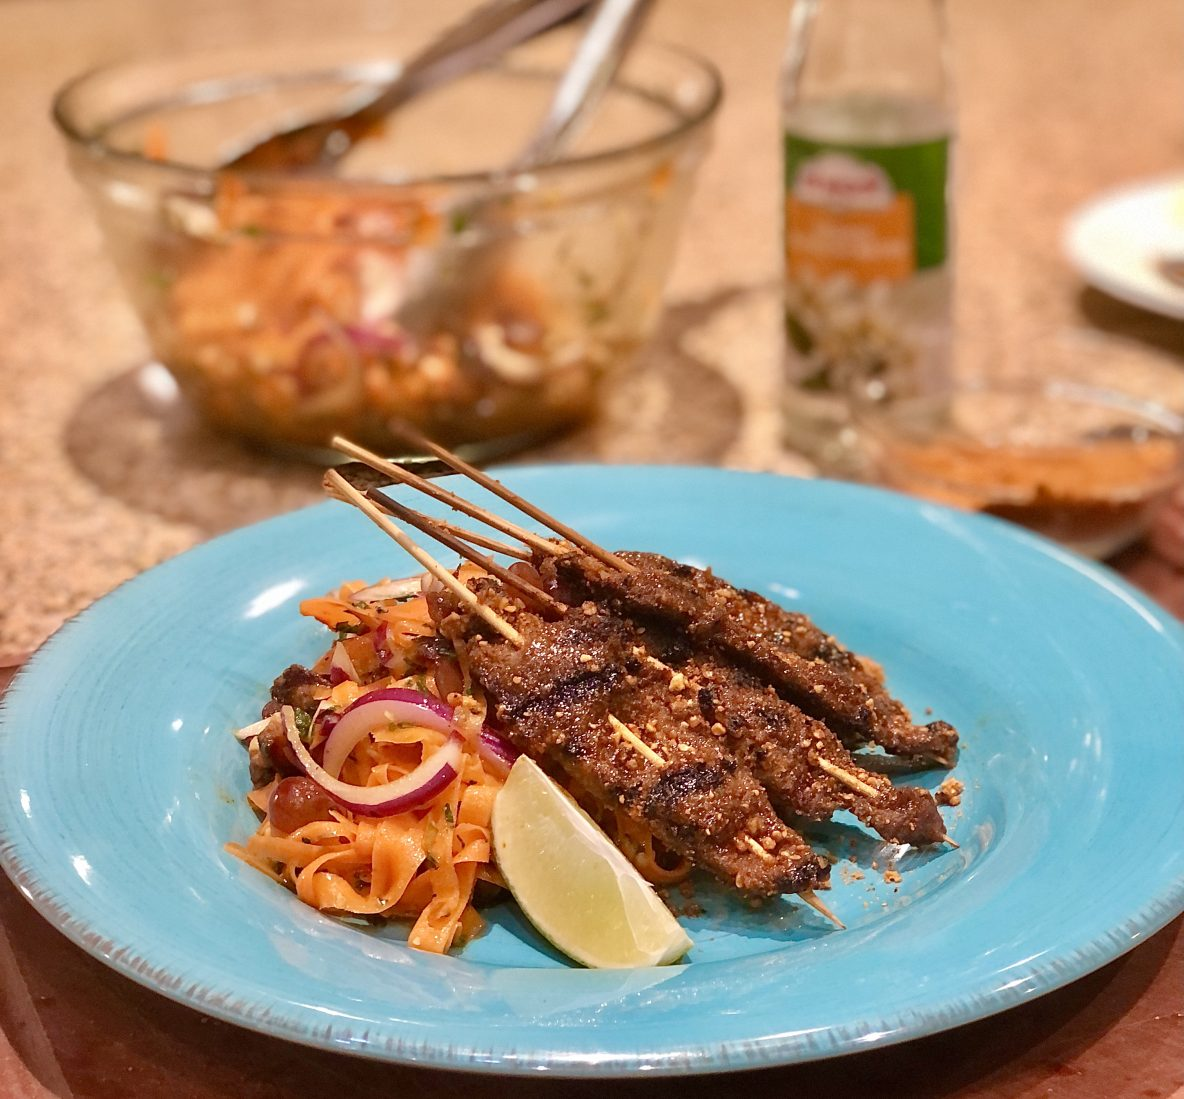 Picture of beef skewers with carrot salad